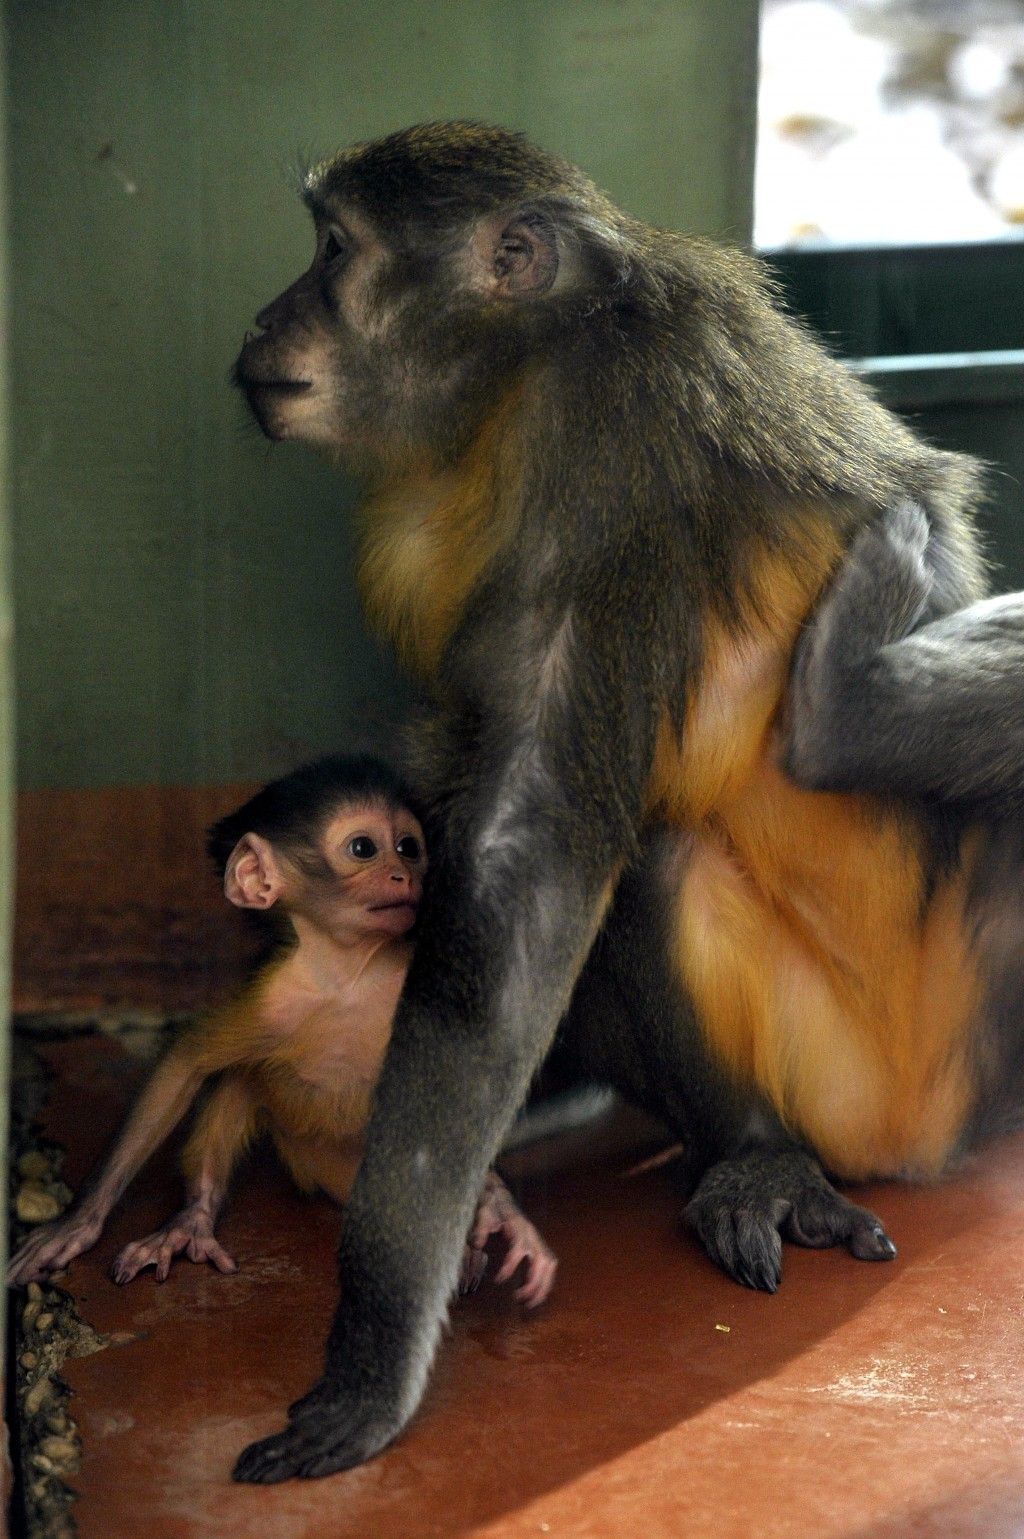 Friday, November 9, 2018 photo, a golden-bellied mangabey with her newborn cub at their enclosure in the Budapest Zoo, Hungary. The baby monkey was bo...